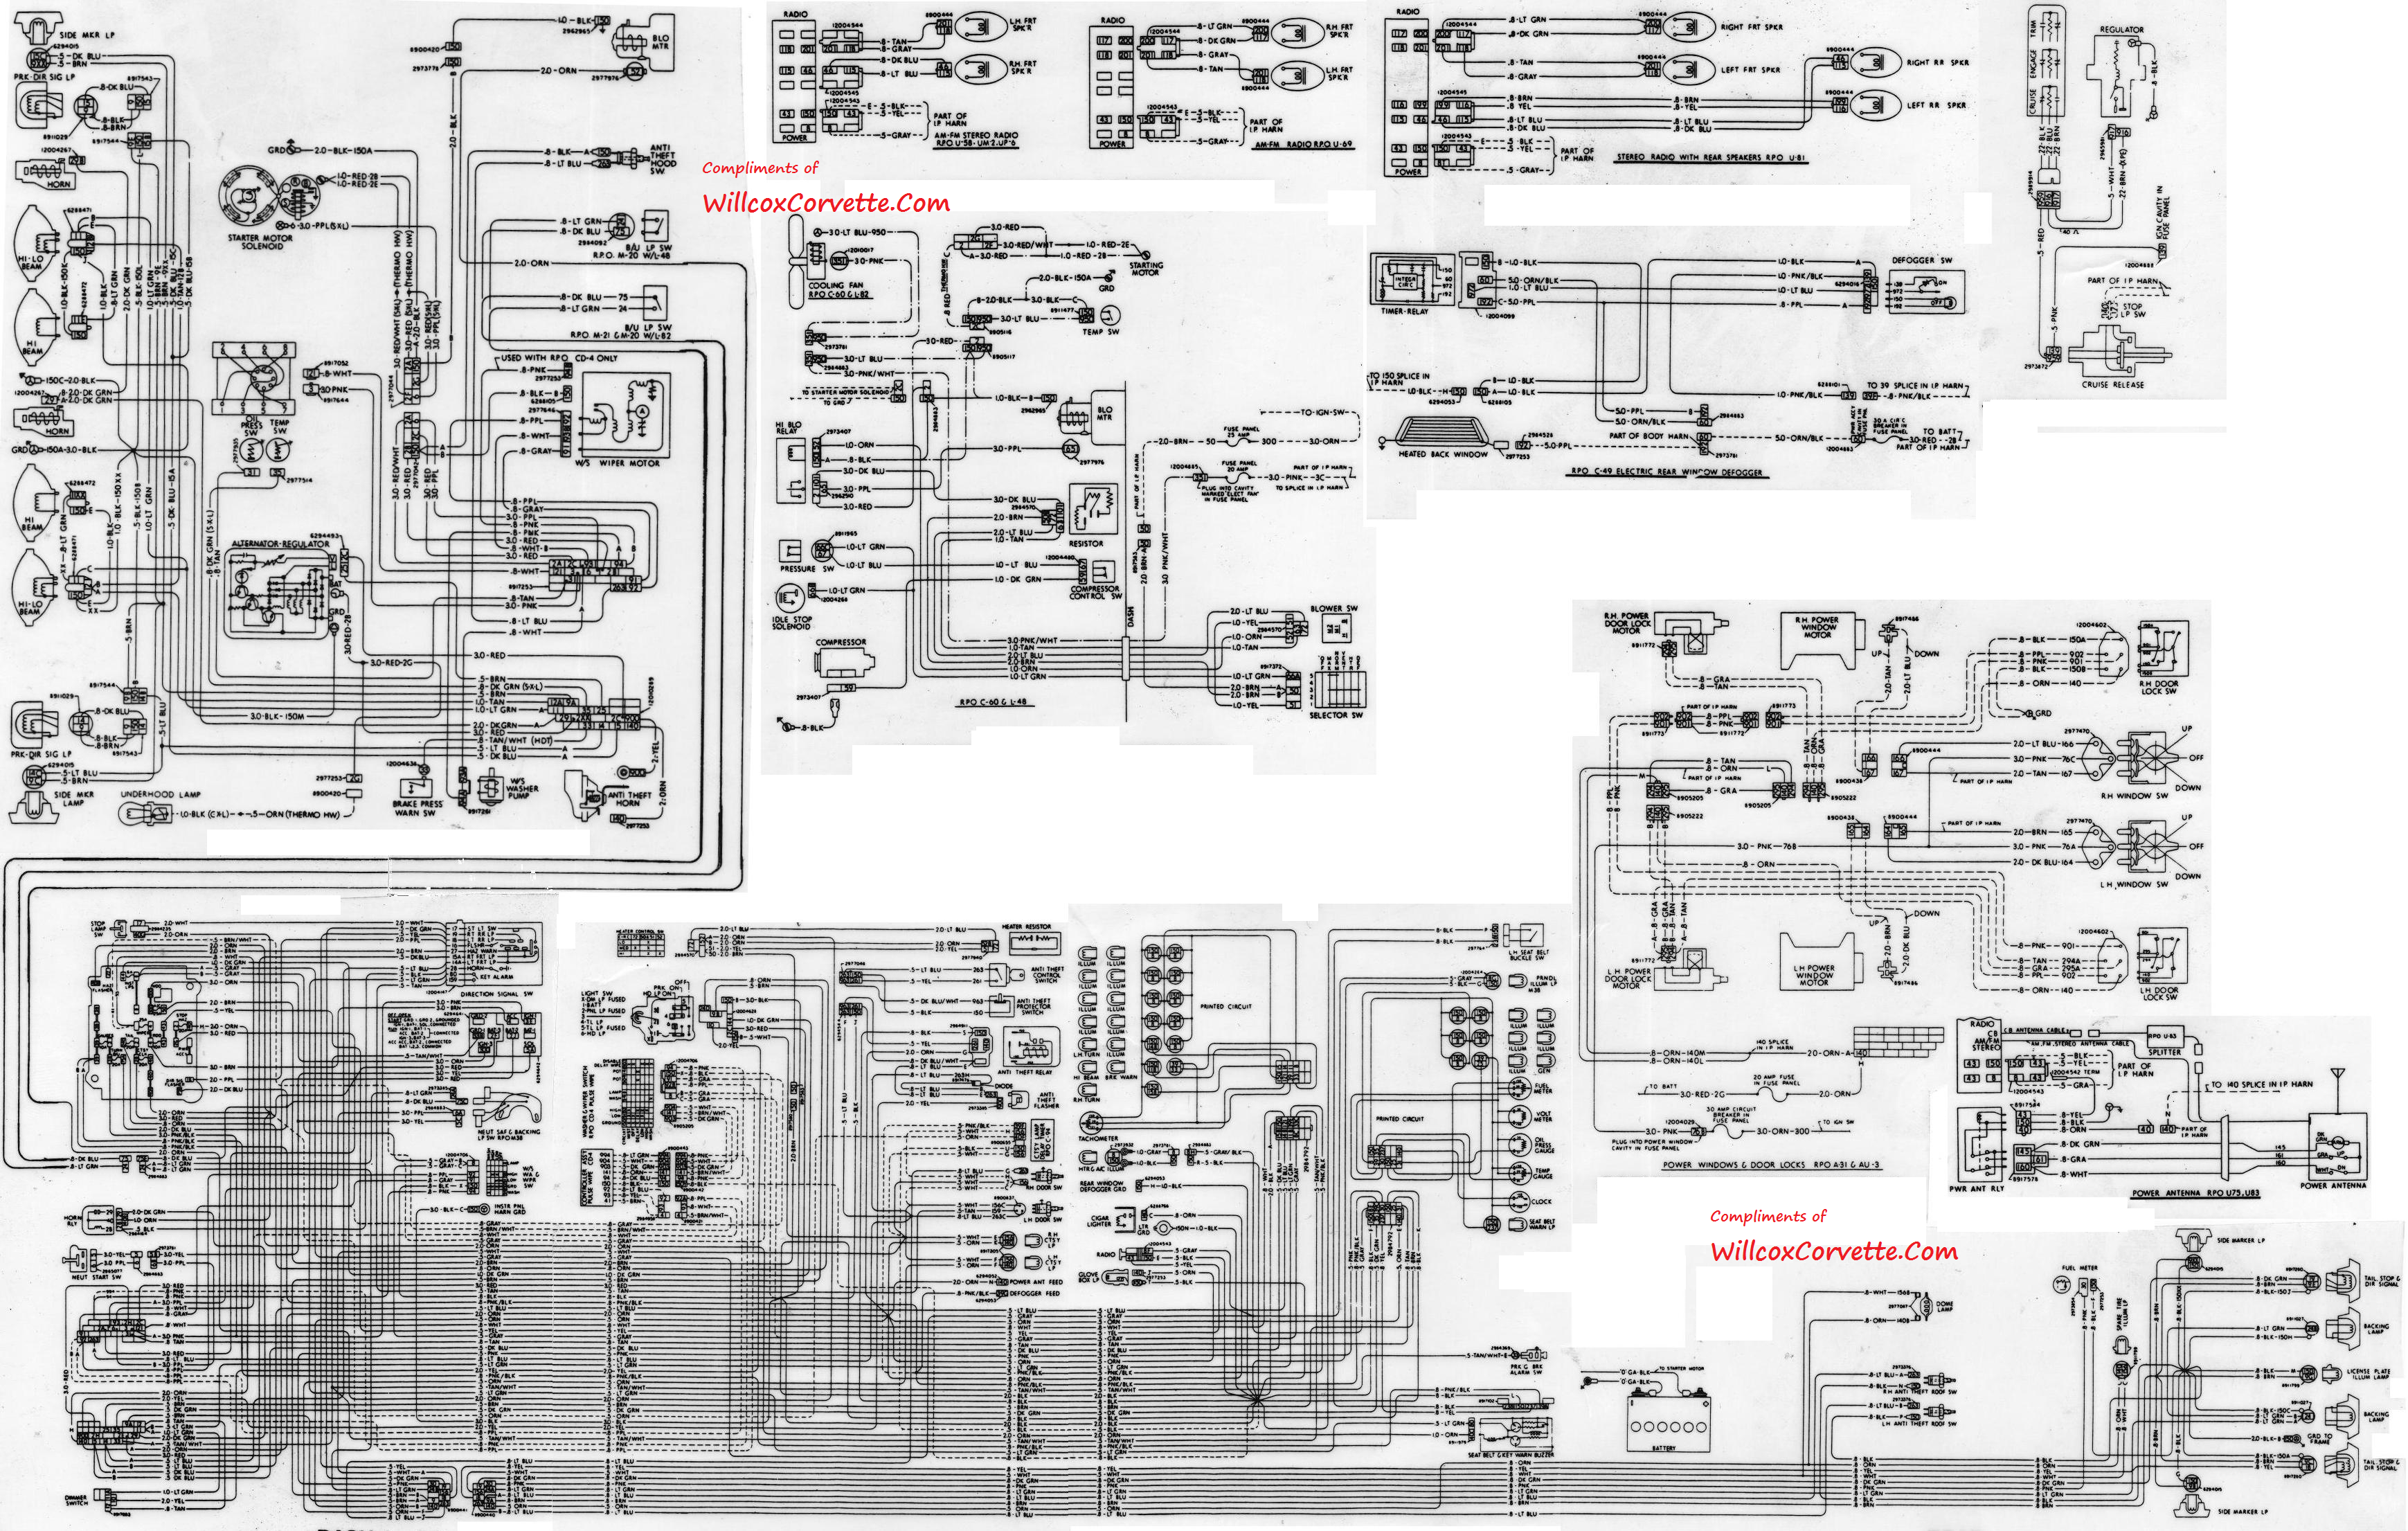 79 COMBINED TRACER SCHEMATIC 1975 corvette wiring diagram 1968 corvette dash wiring diagram 75 corvette wiring diagram at fashall.co